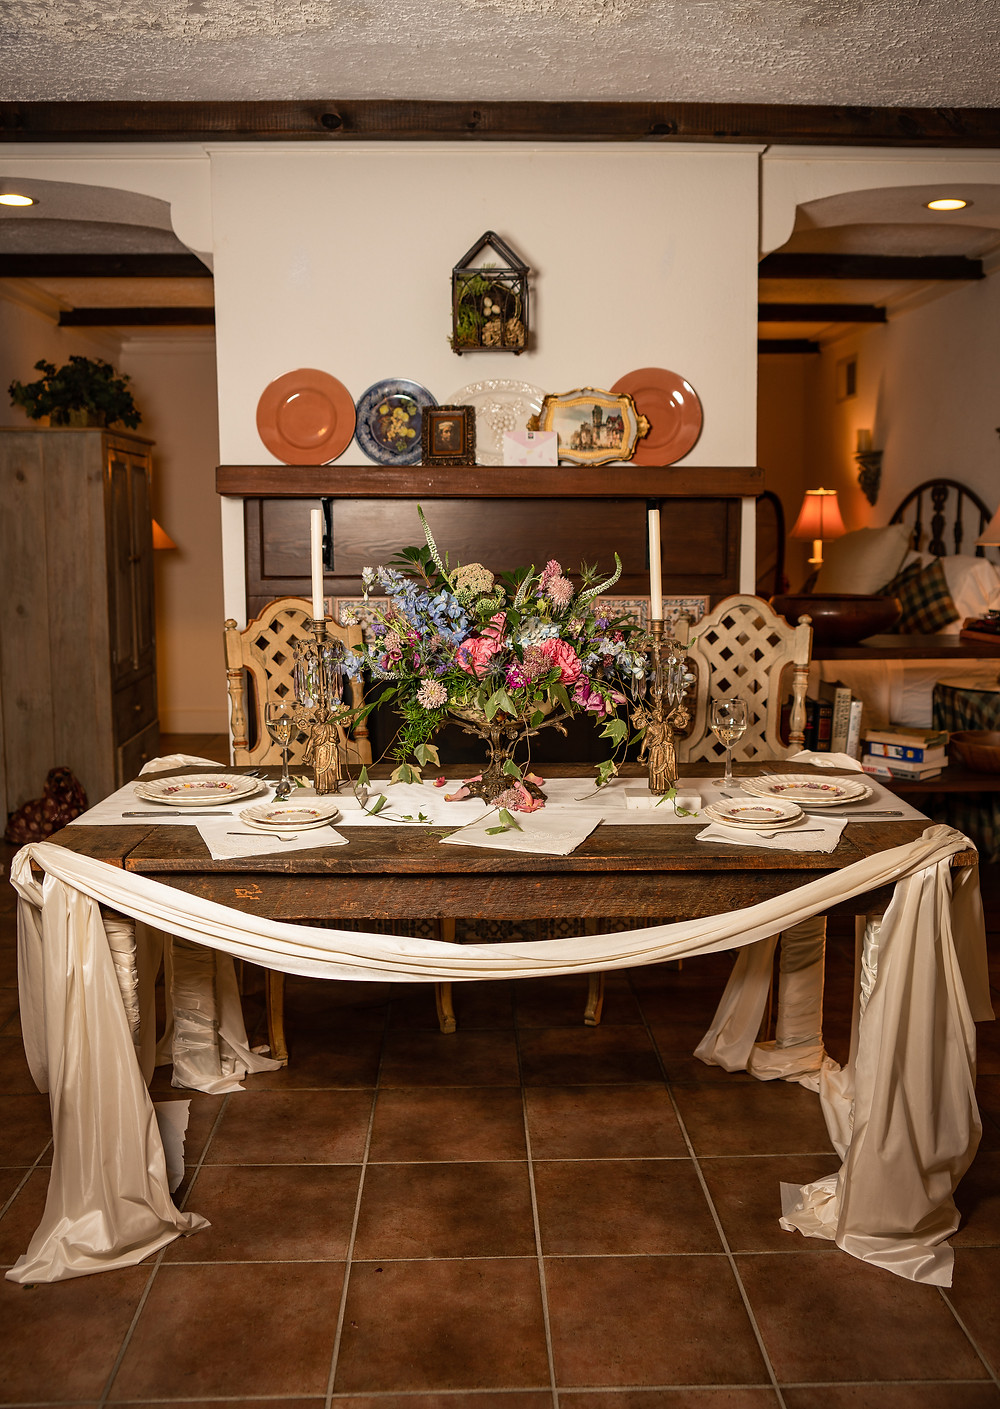 Farm table Rental, Tuscan themed wedding, Wedding rentals and staging